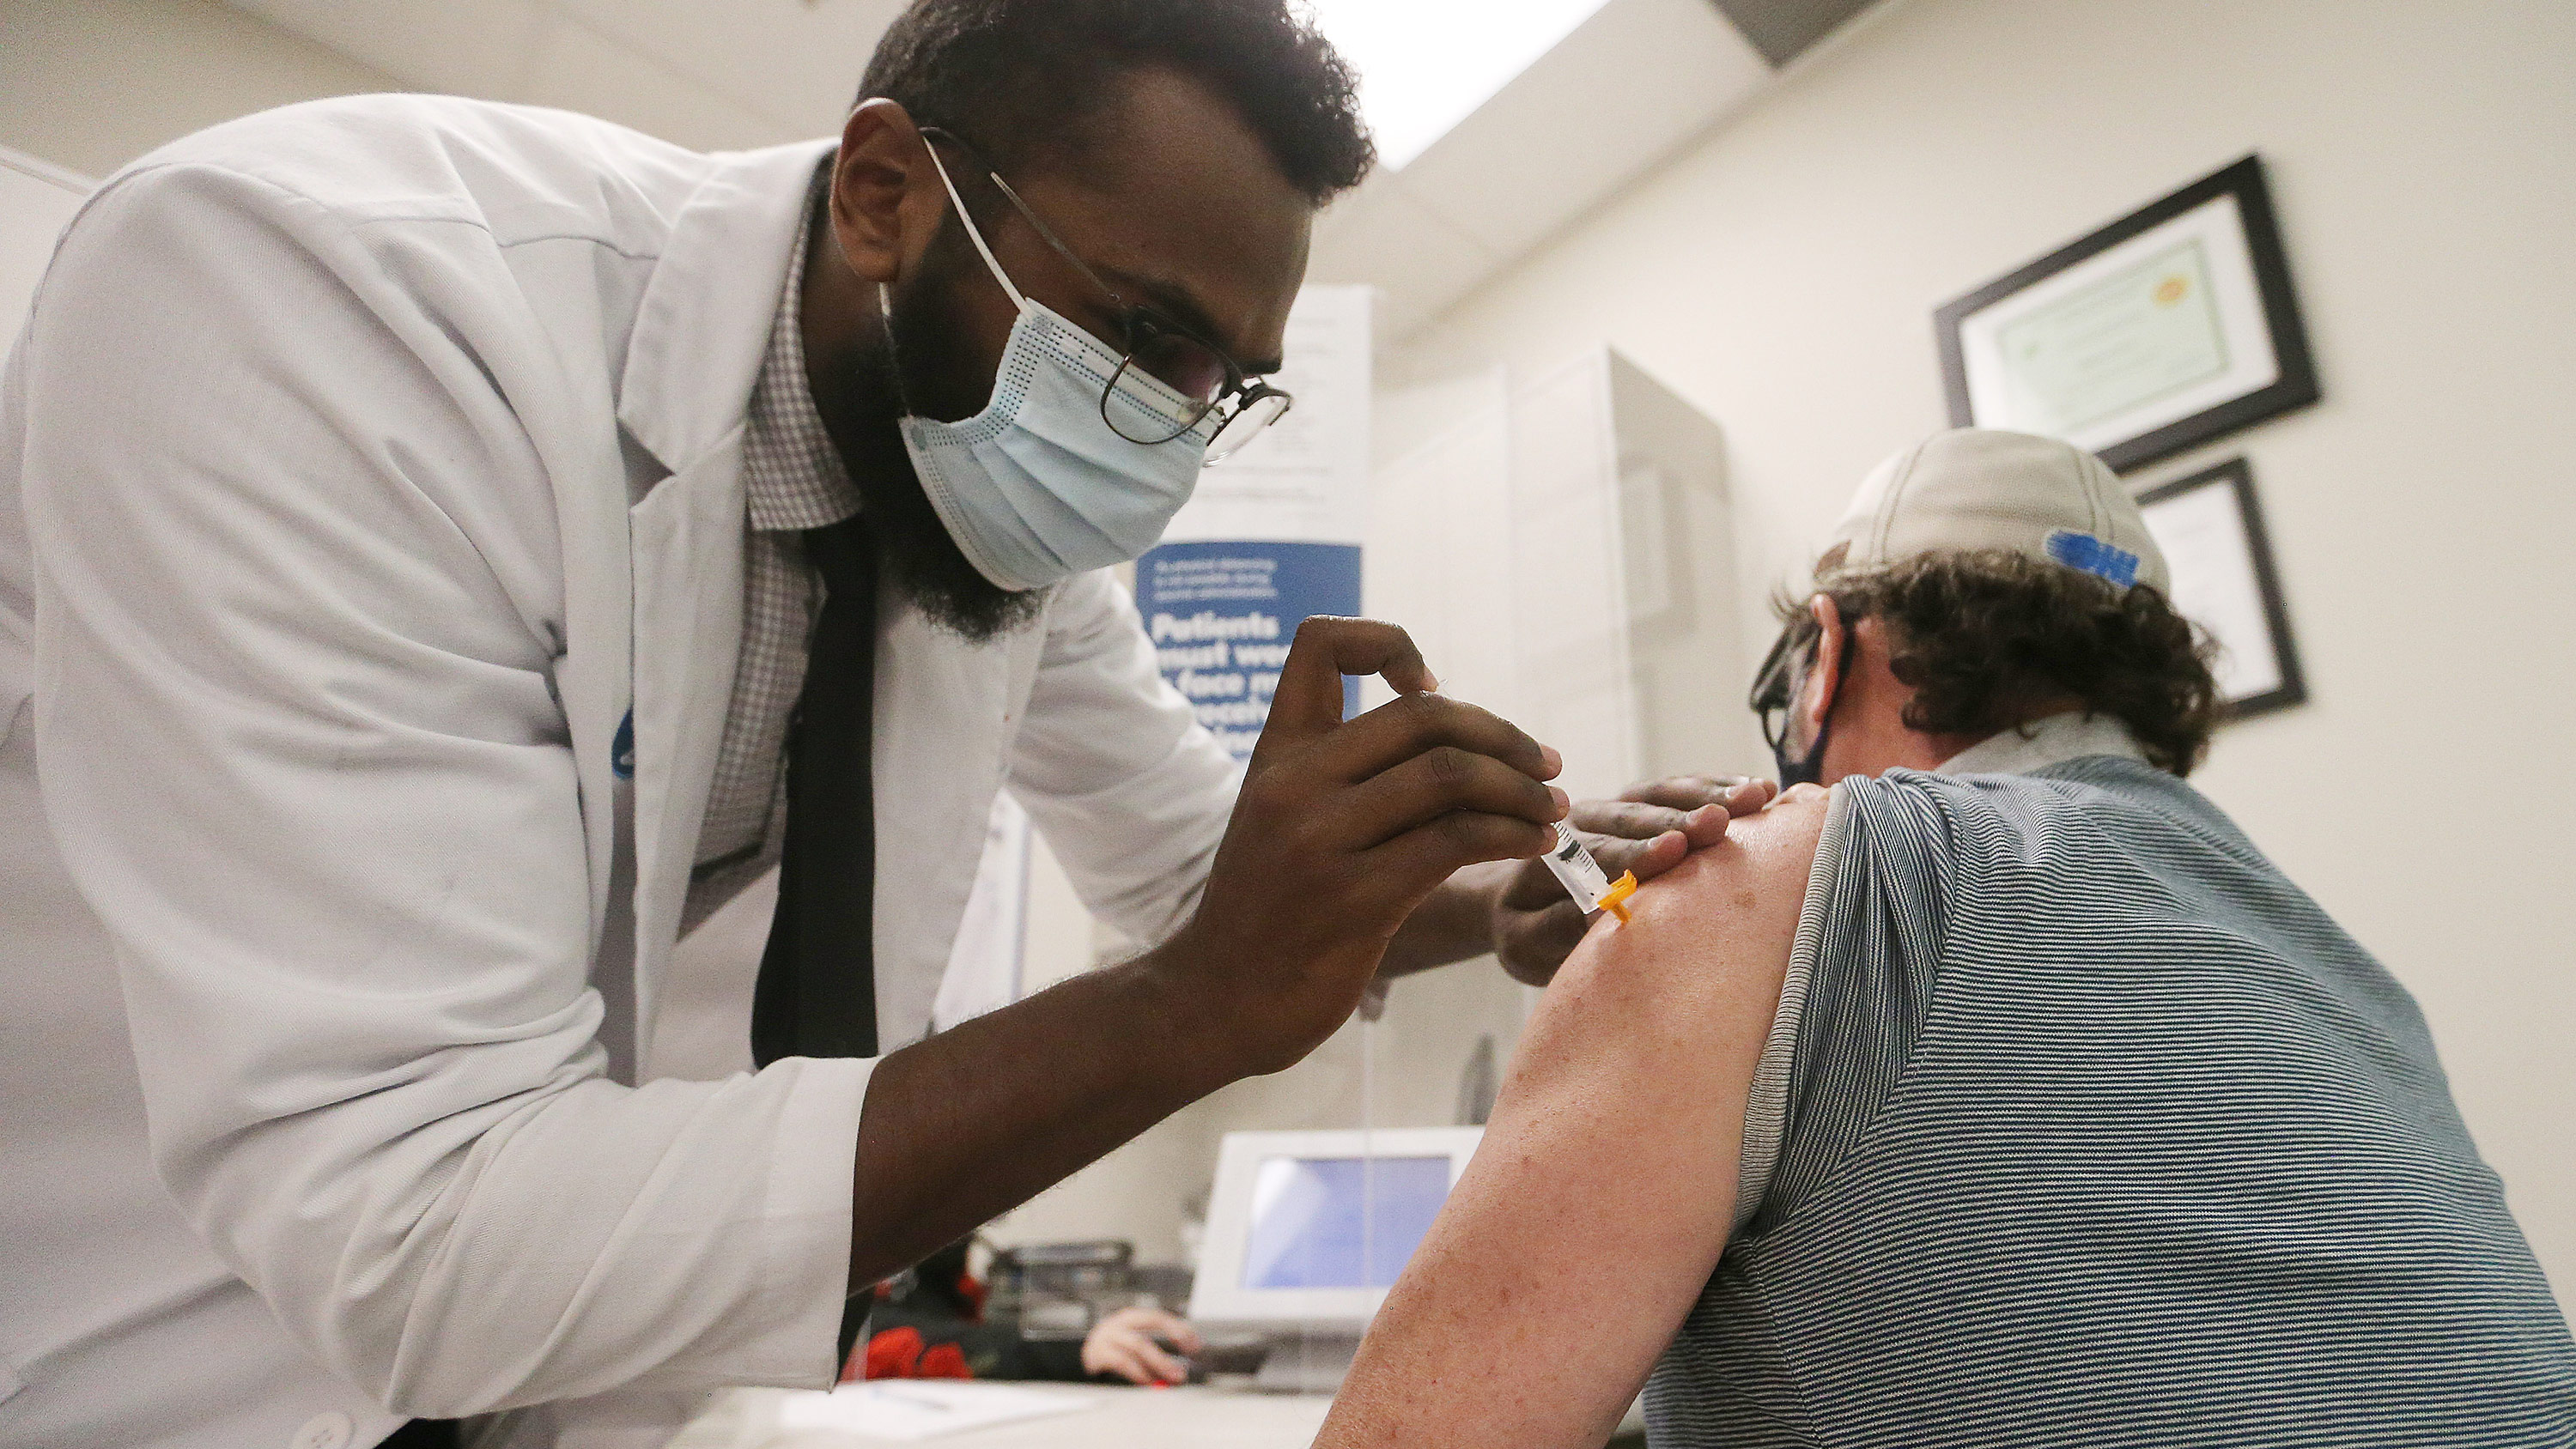 A health worker administers the AstraZeneca Covid-19 vaccine at a Shoppers Drug Mart in Toronto, on March 11.